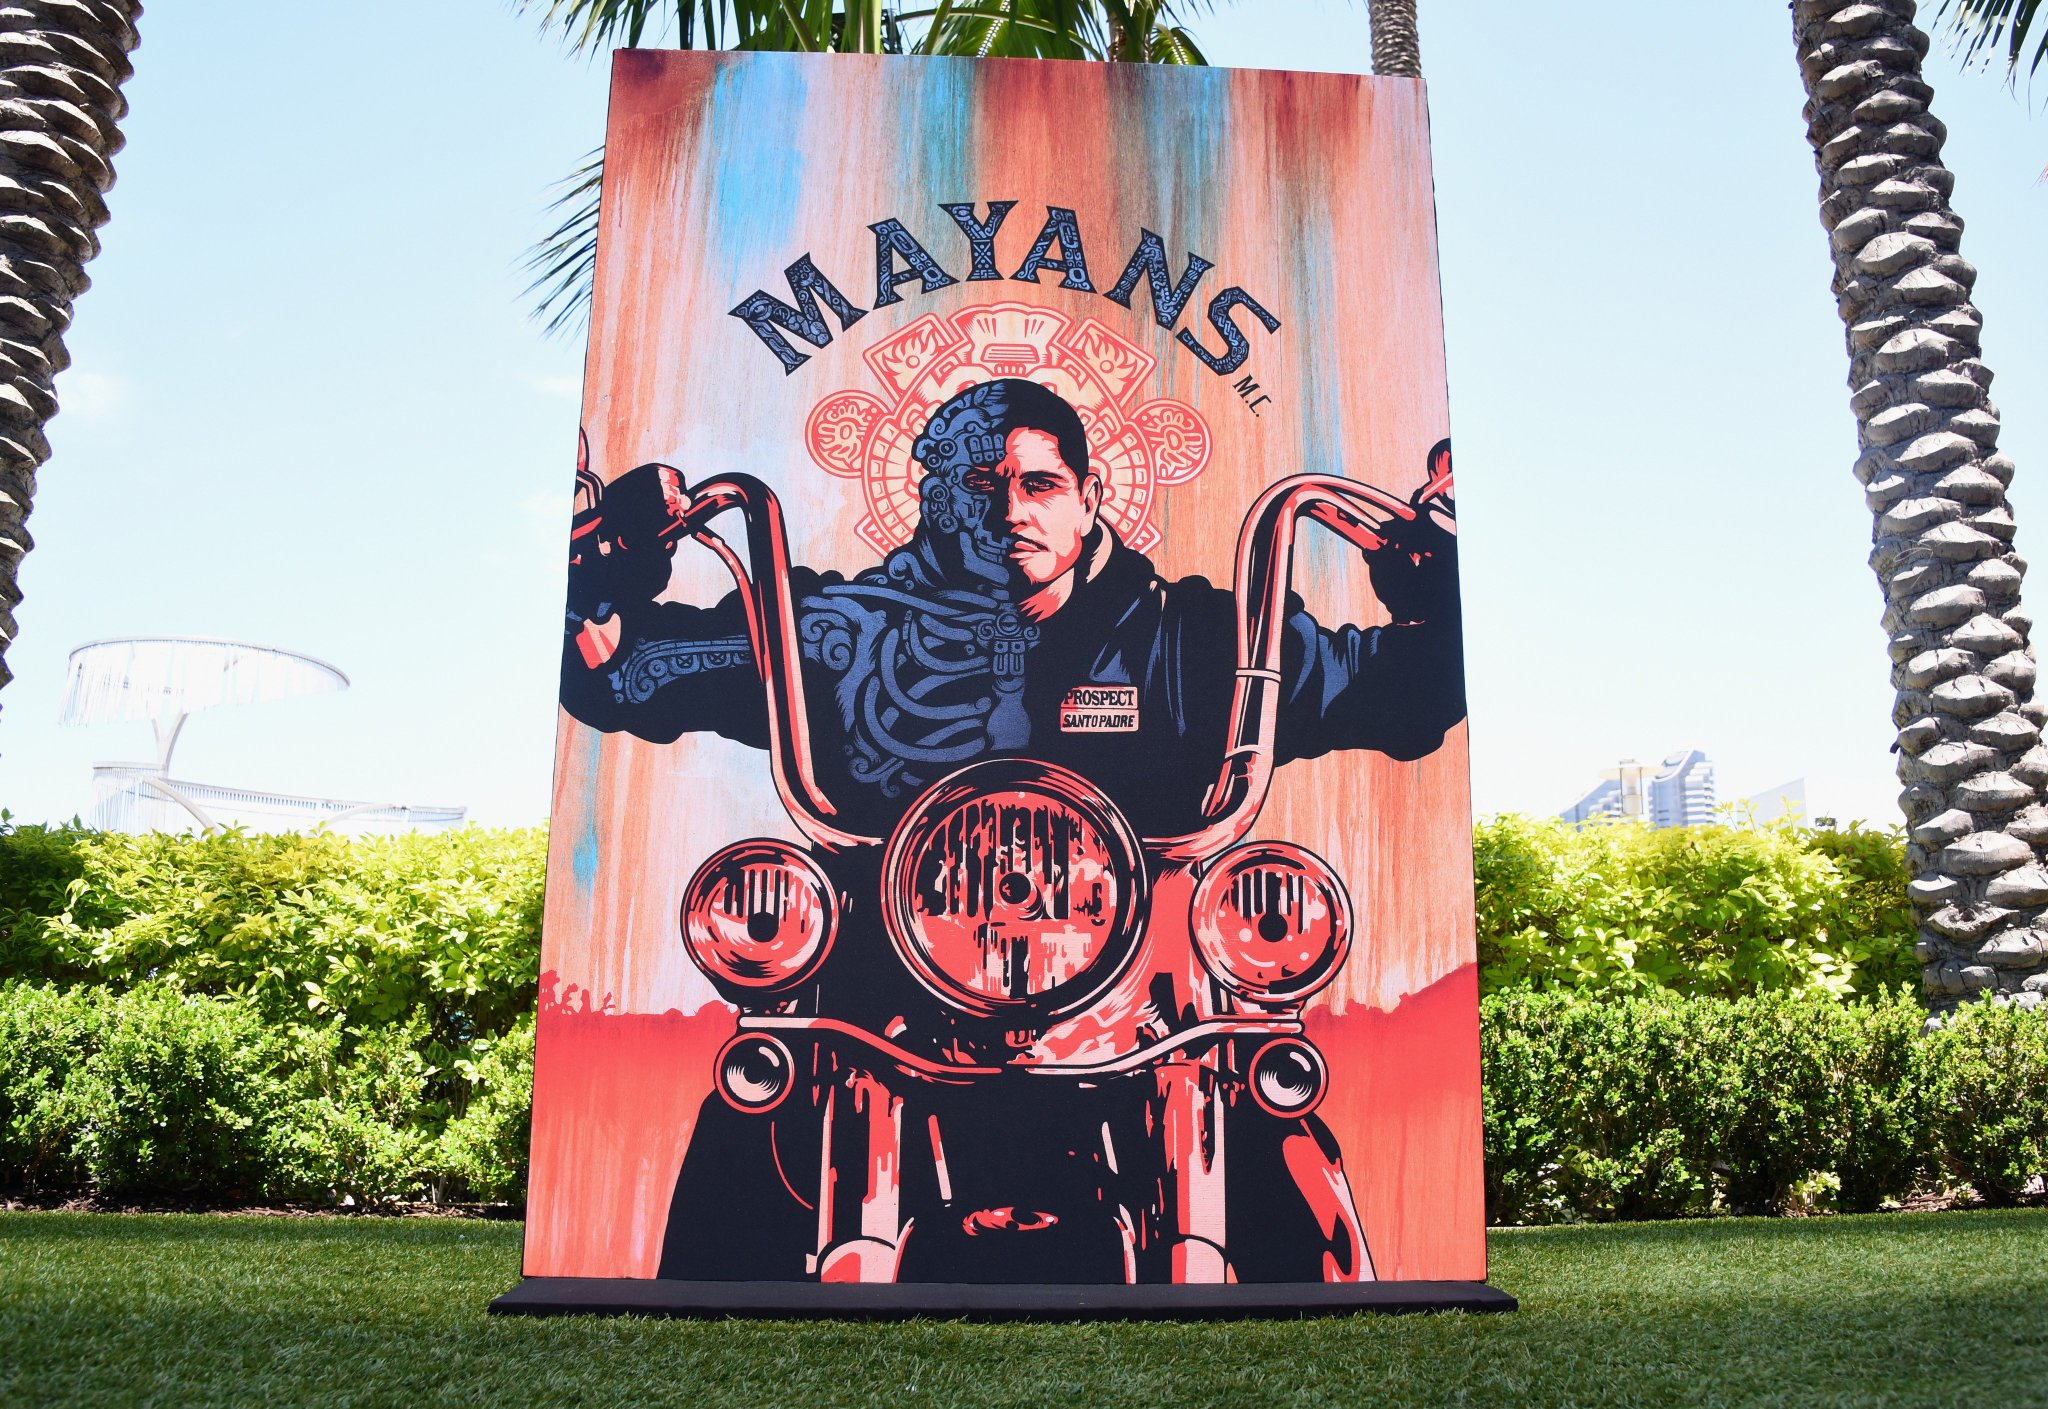 #MayansFX is out here at #SDCC. �� https://t.co/ANeEPBcJRg https://t.co/NuHBS8rSWj